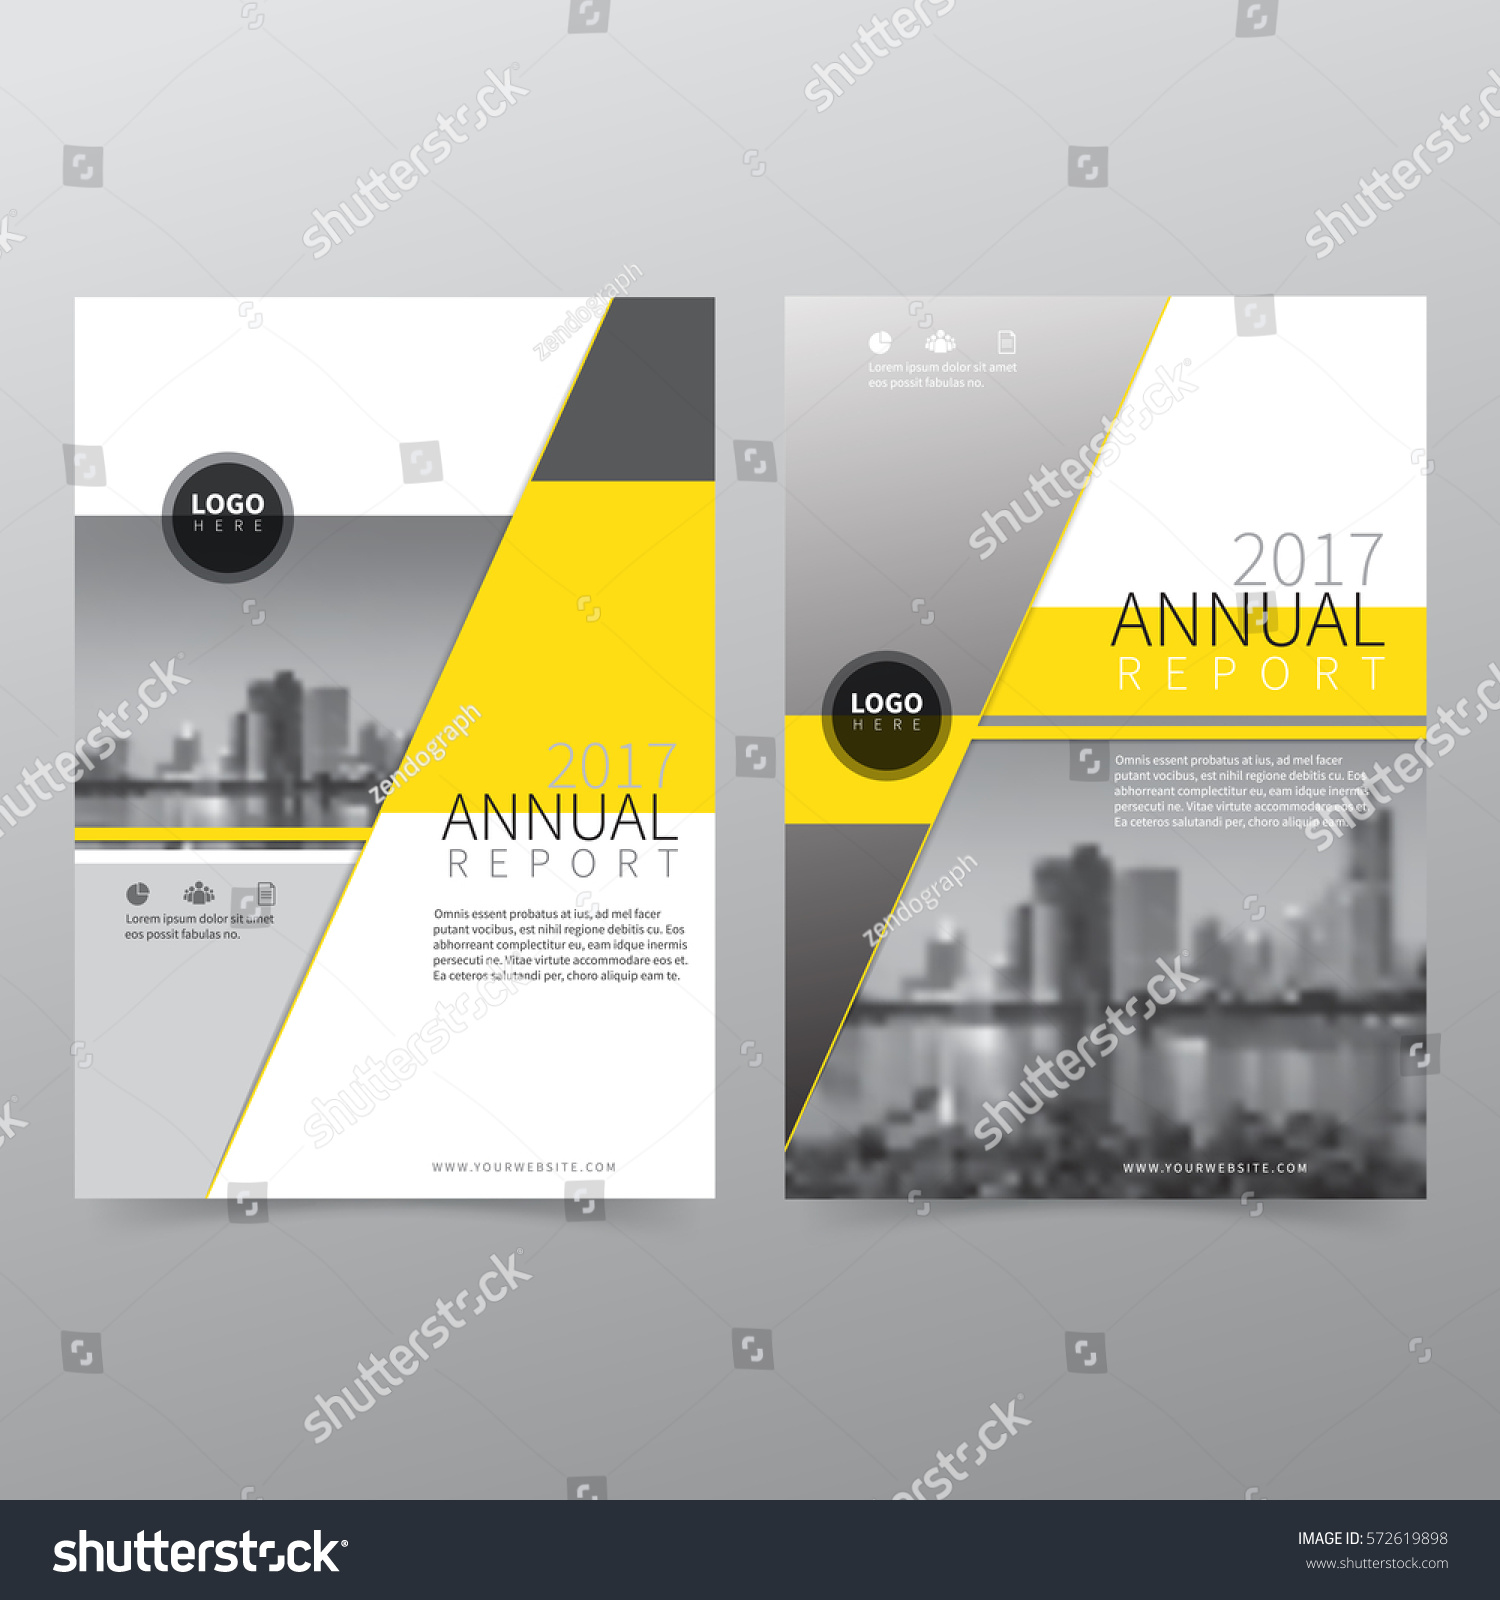 Annual Report Book Cover Design : Annual report flyer presentation brochure front lager